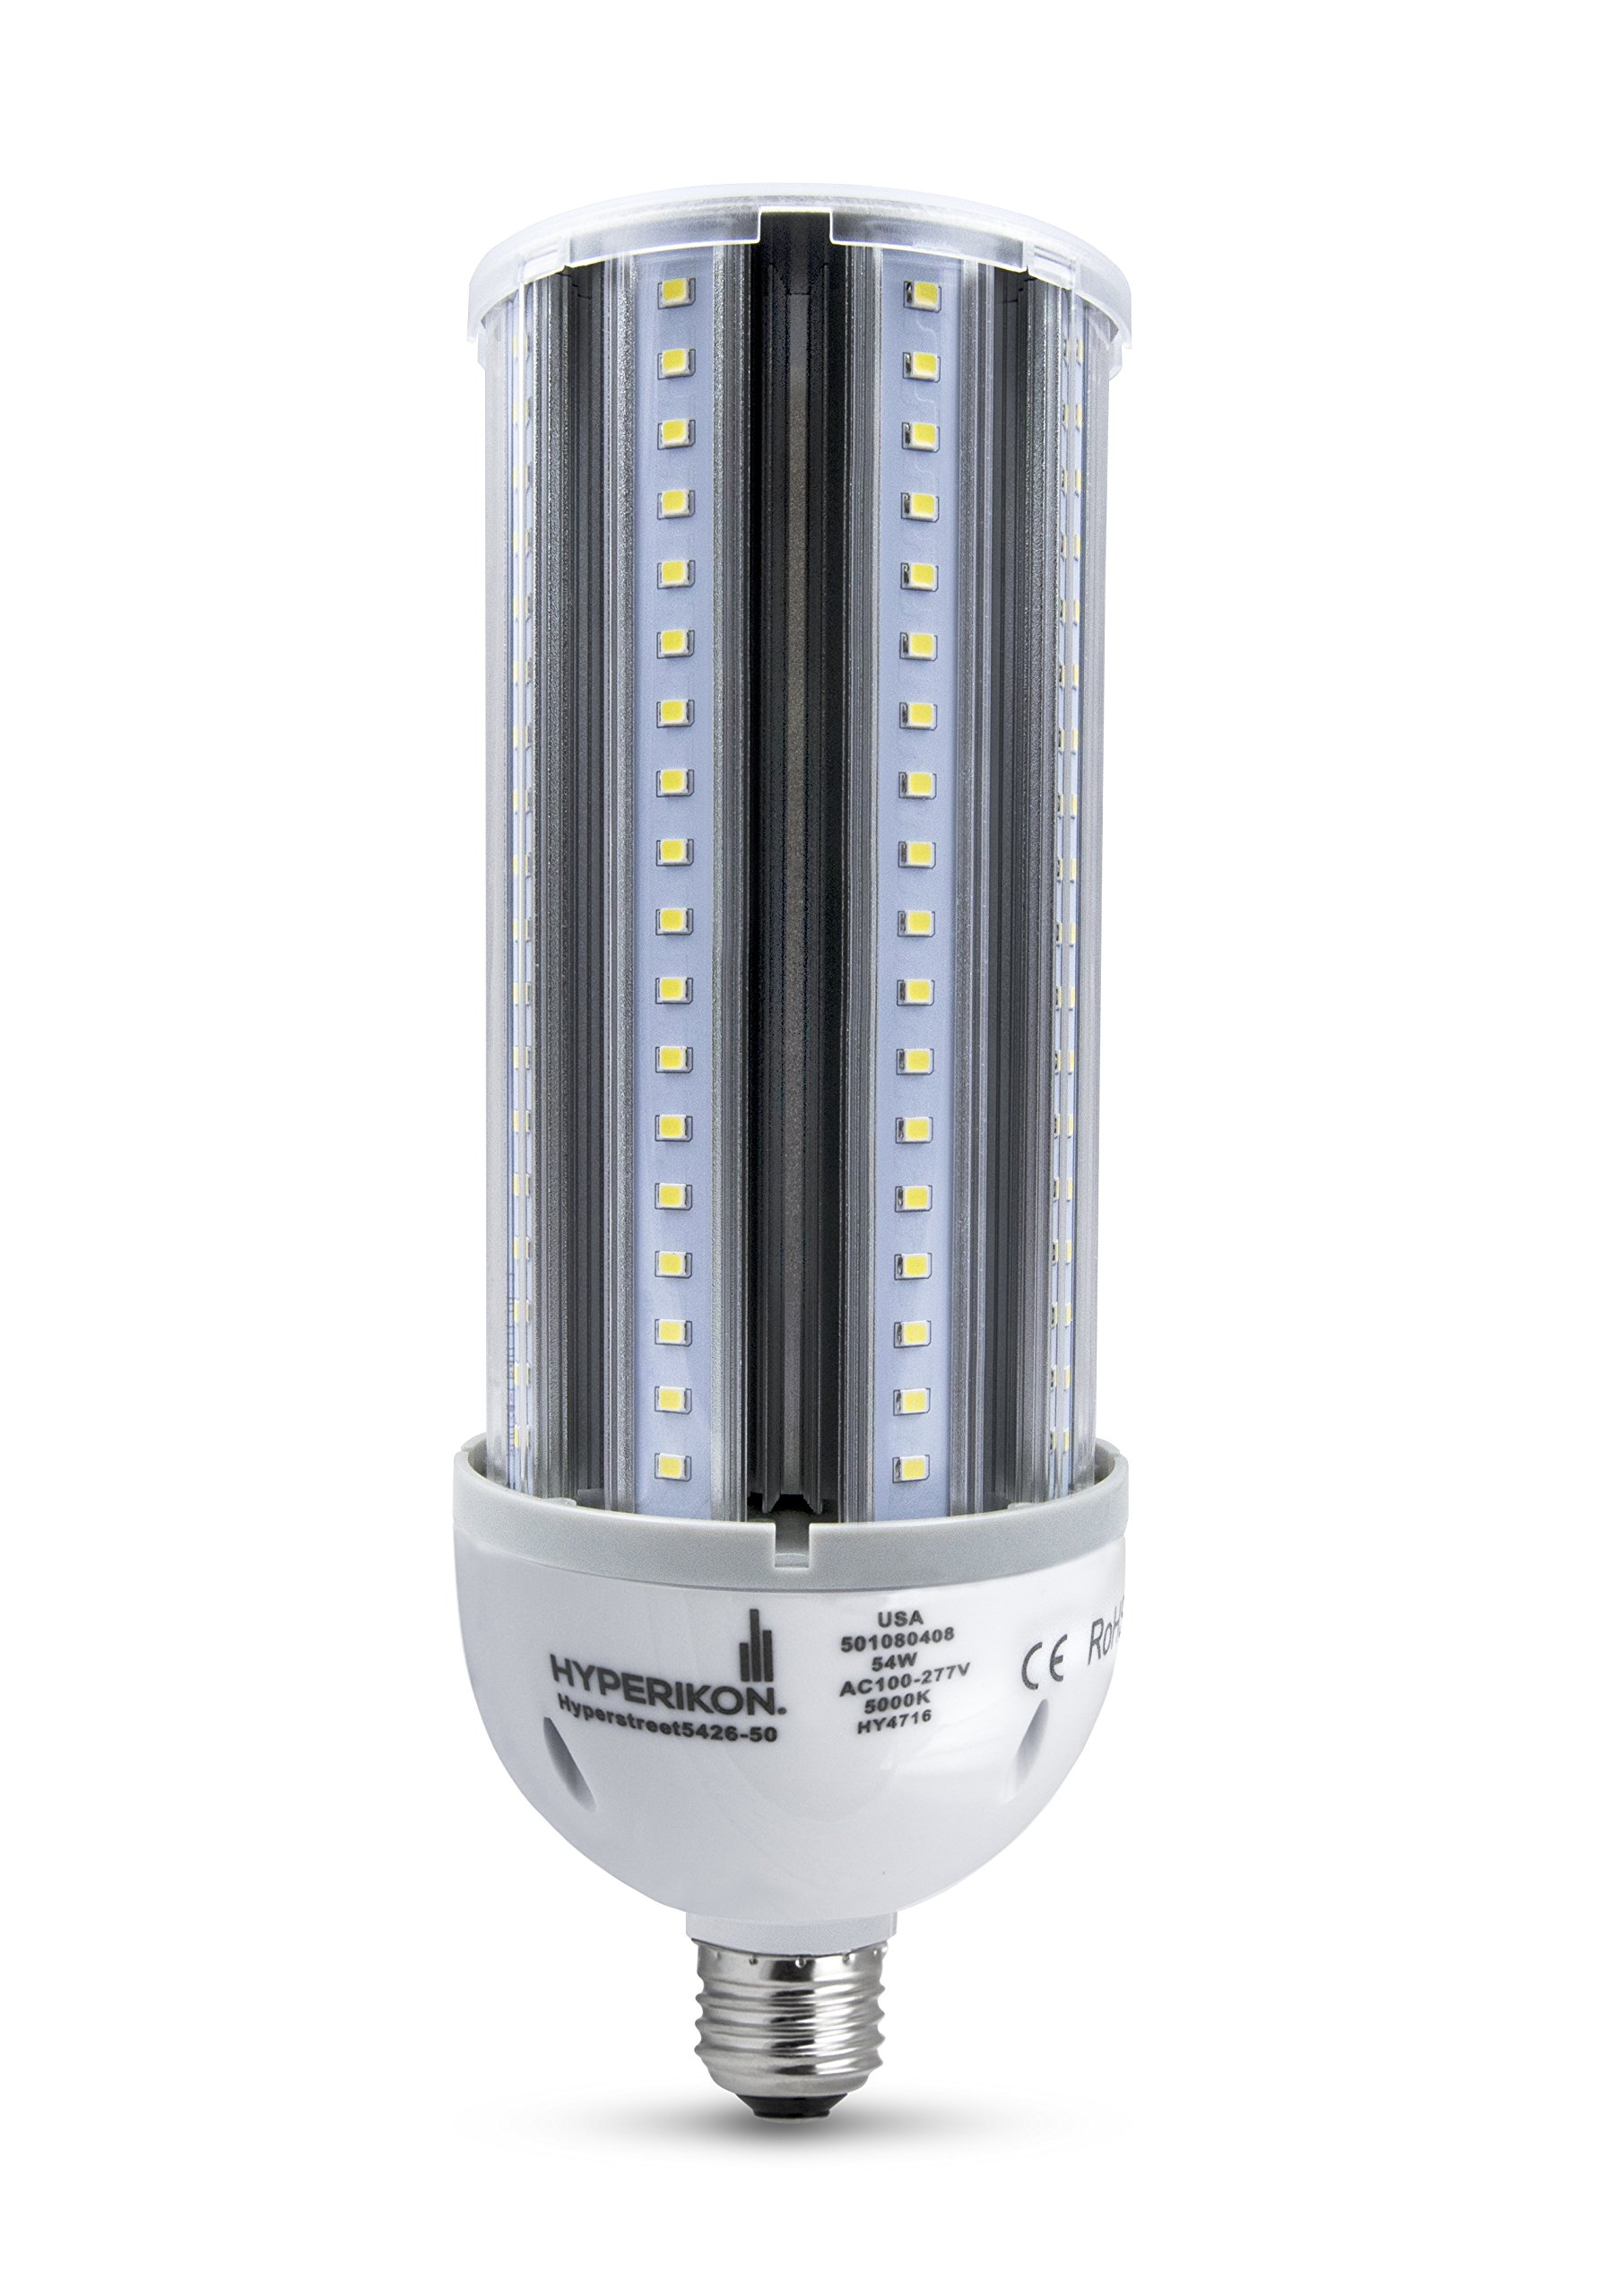 Hyperselect 54w Led Corn Light Bulb Street And Area Light